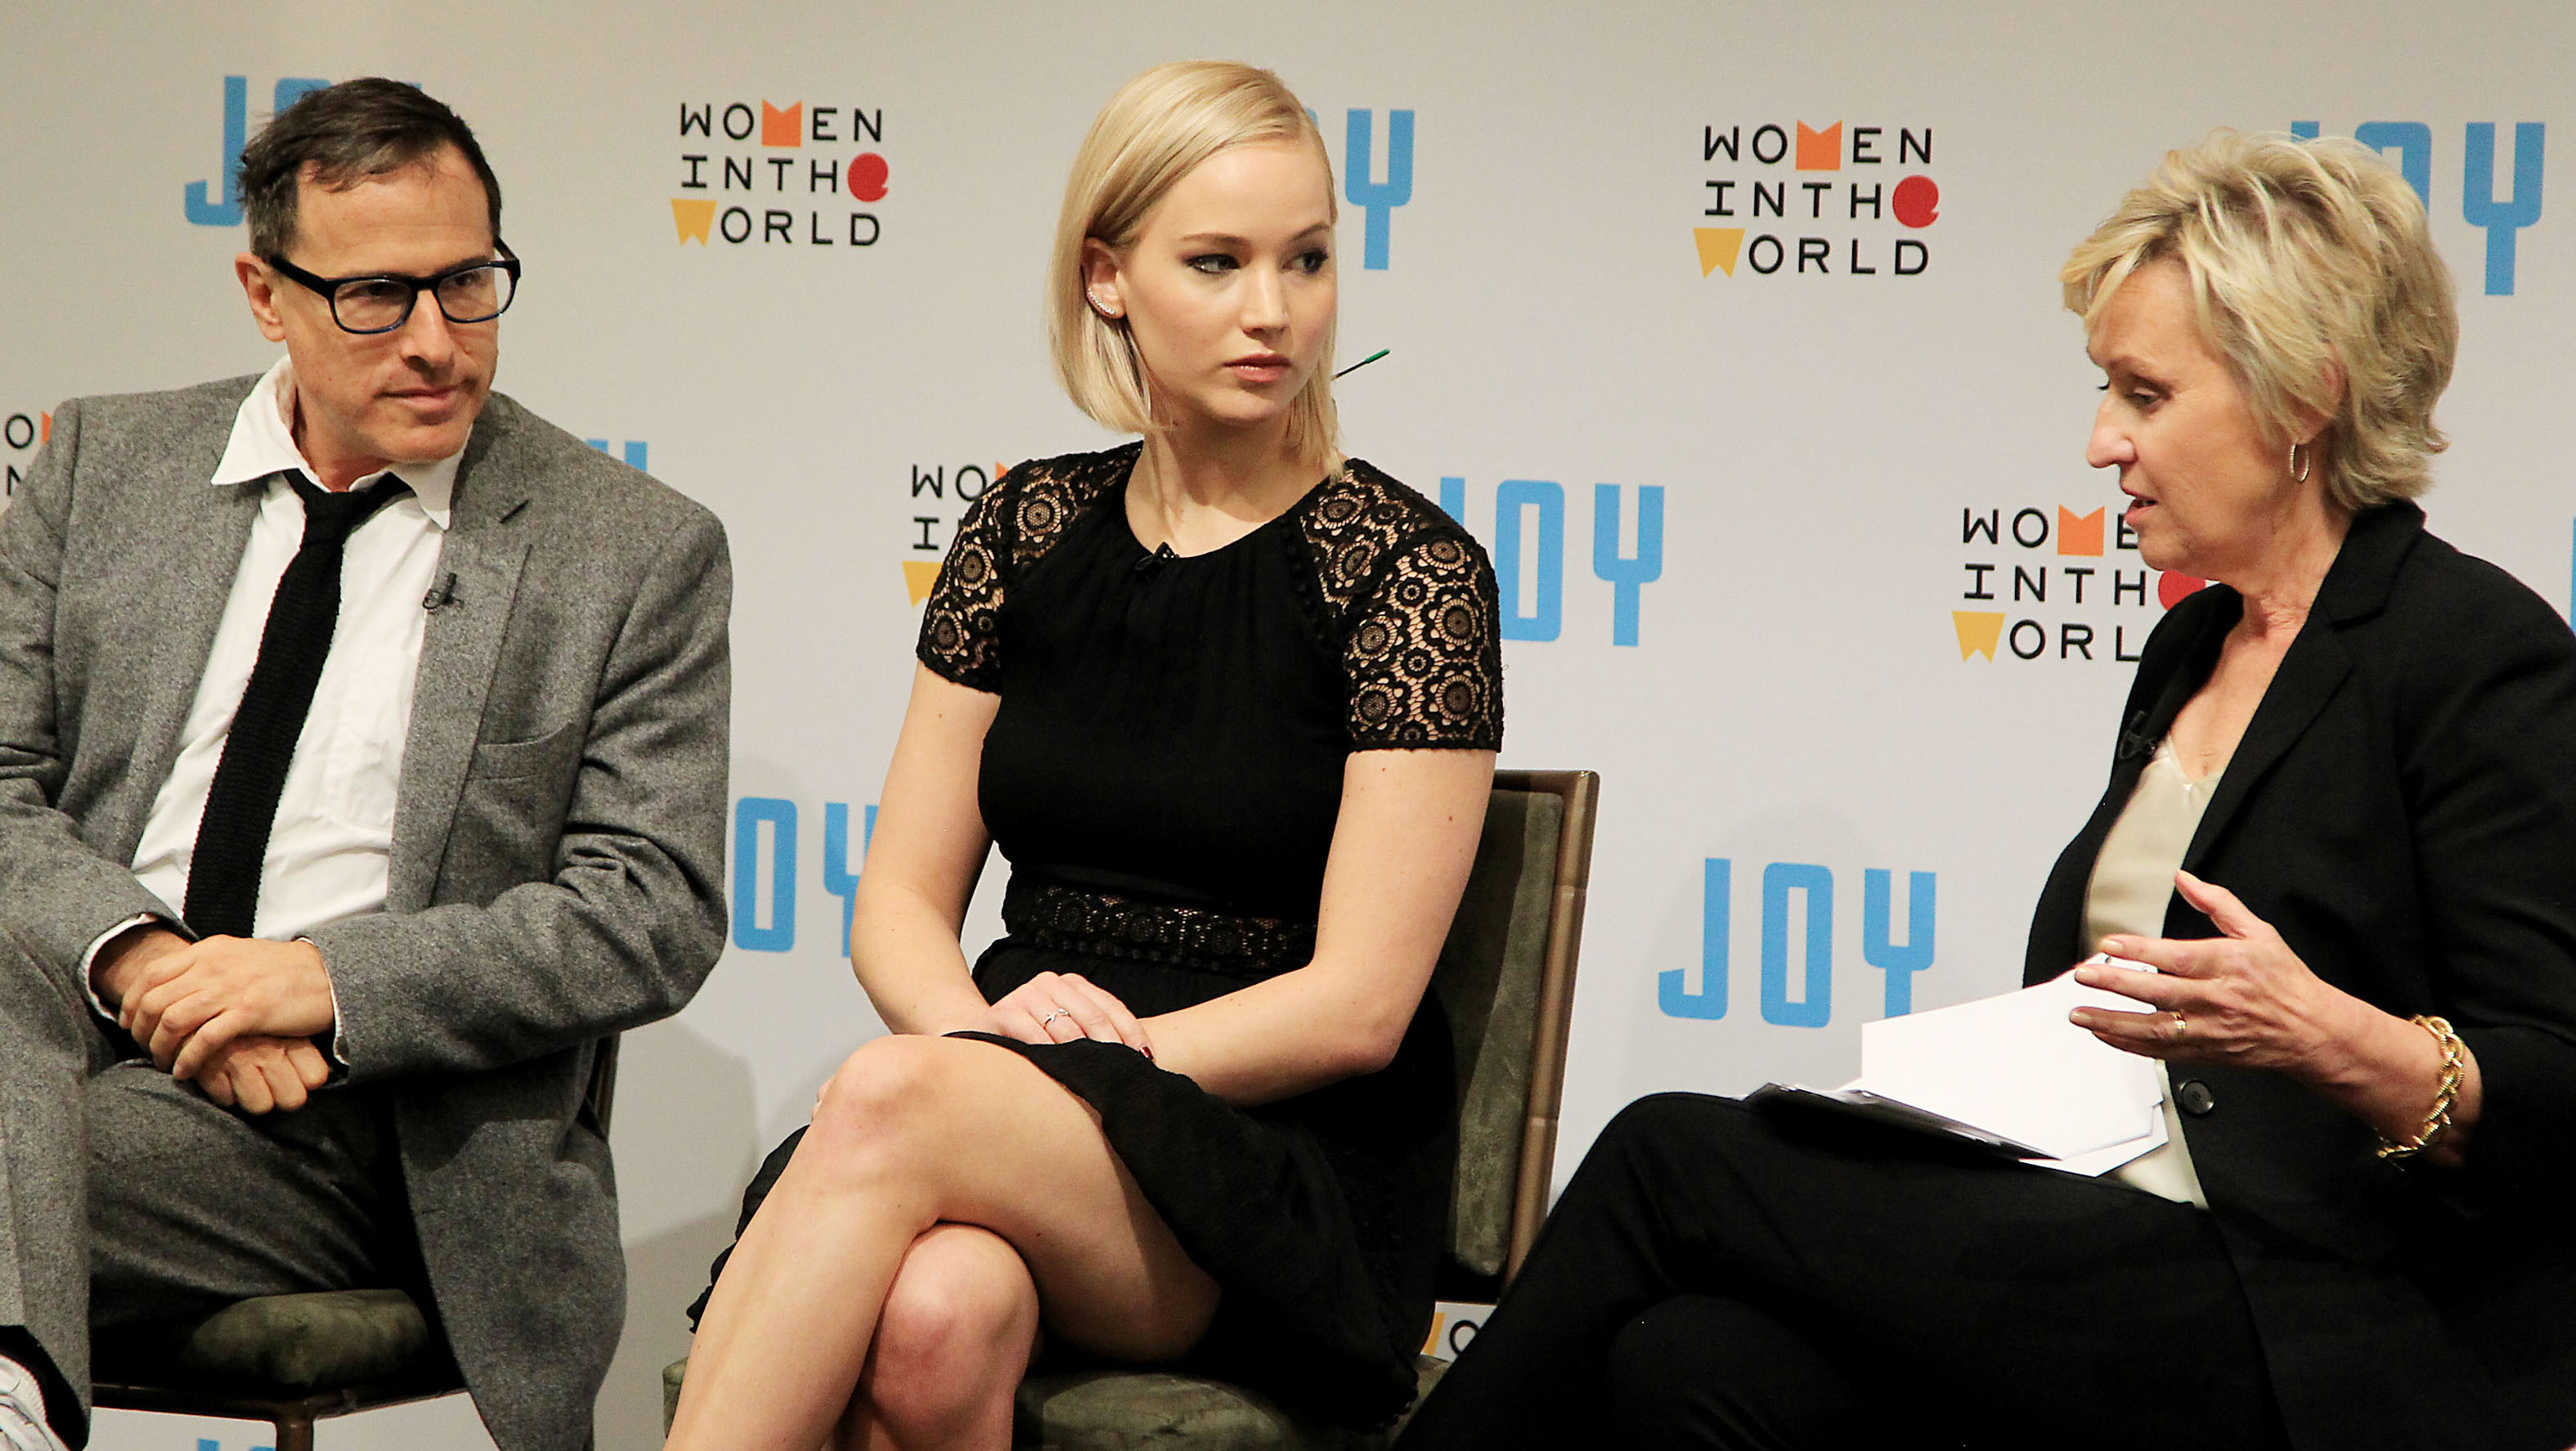 Women In The World Lunch - H 2015